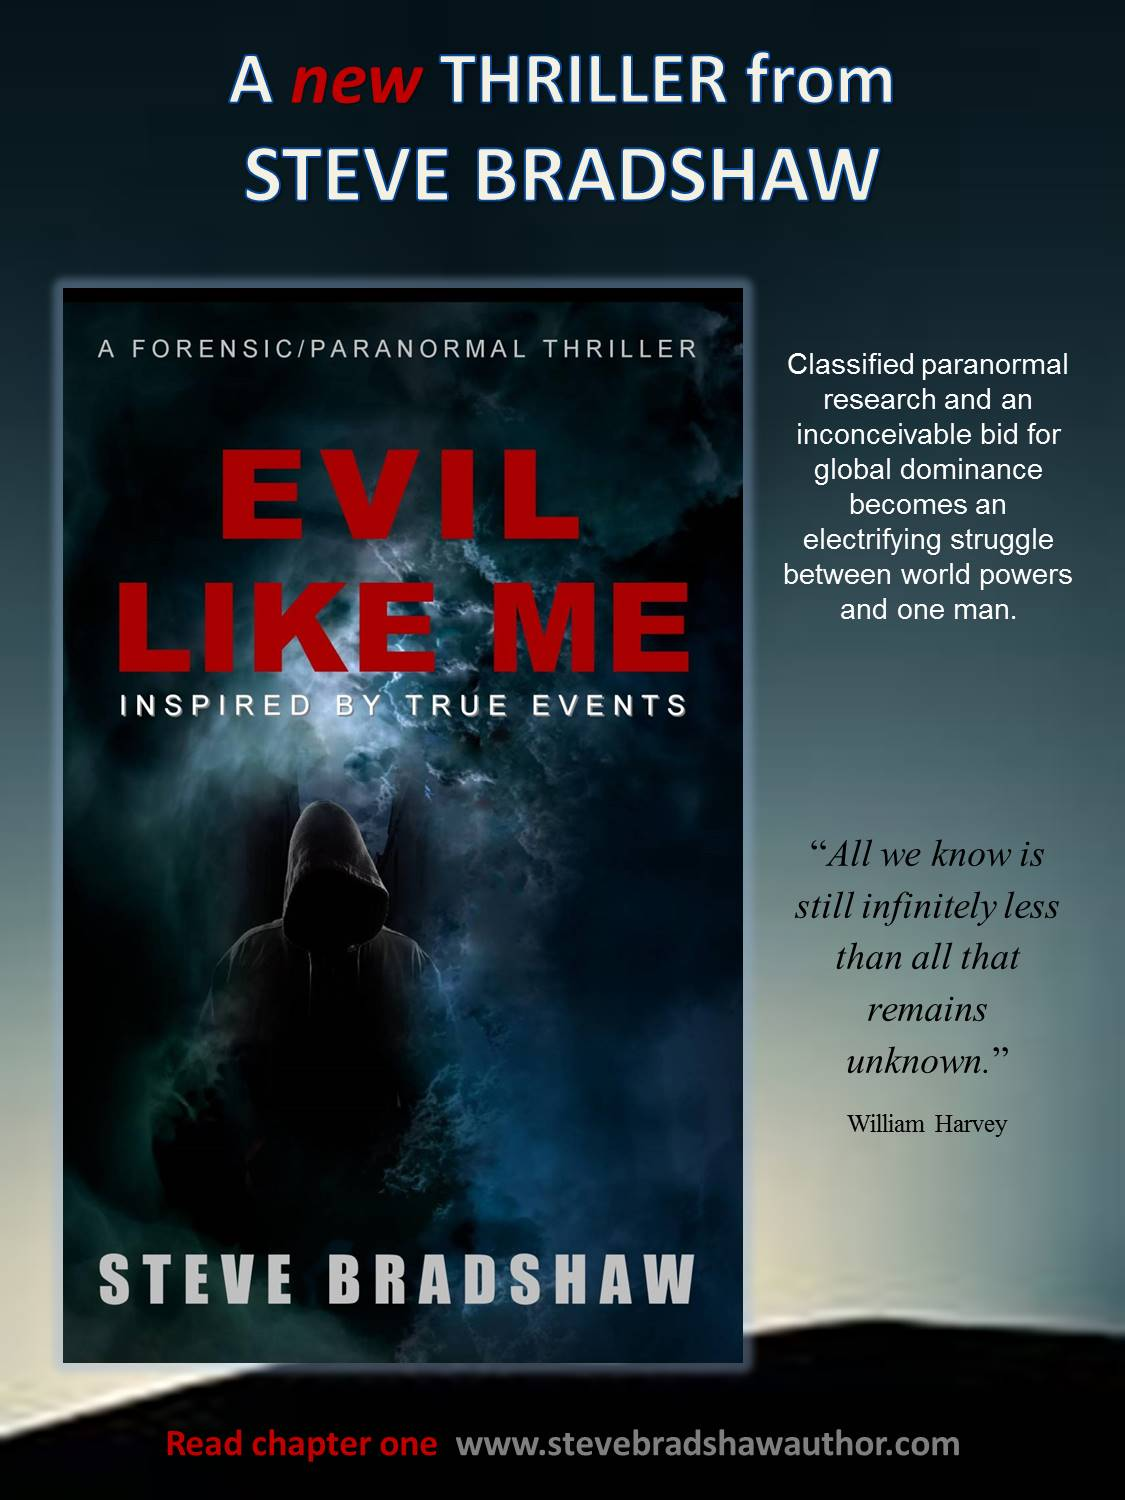 Mystery/Thriller Author Steve Bradshaw's Book Signing